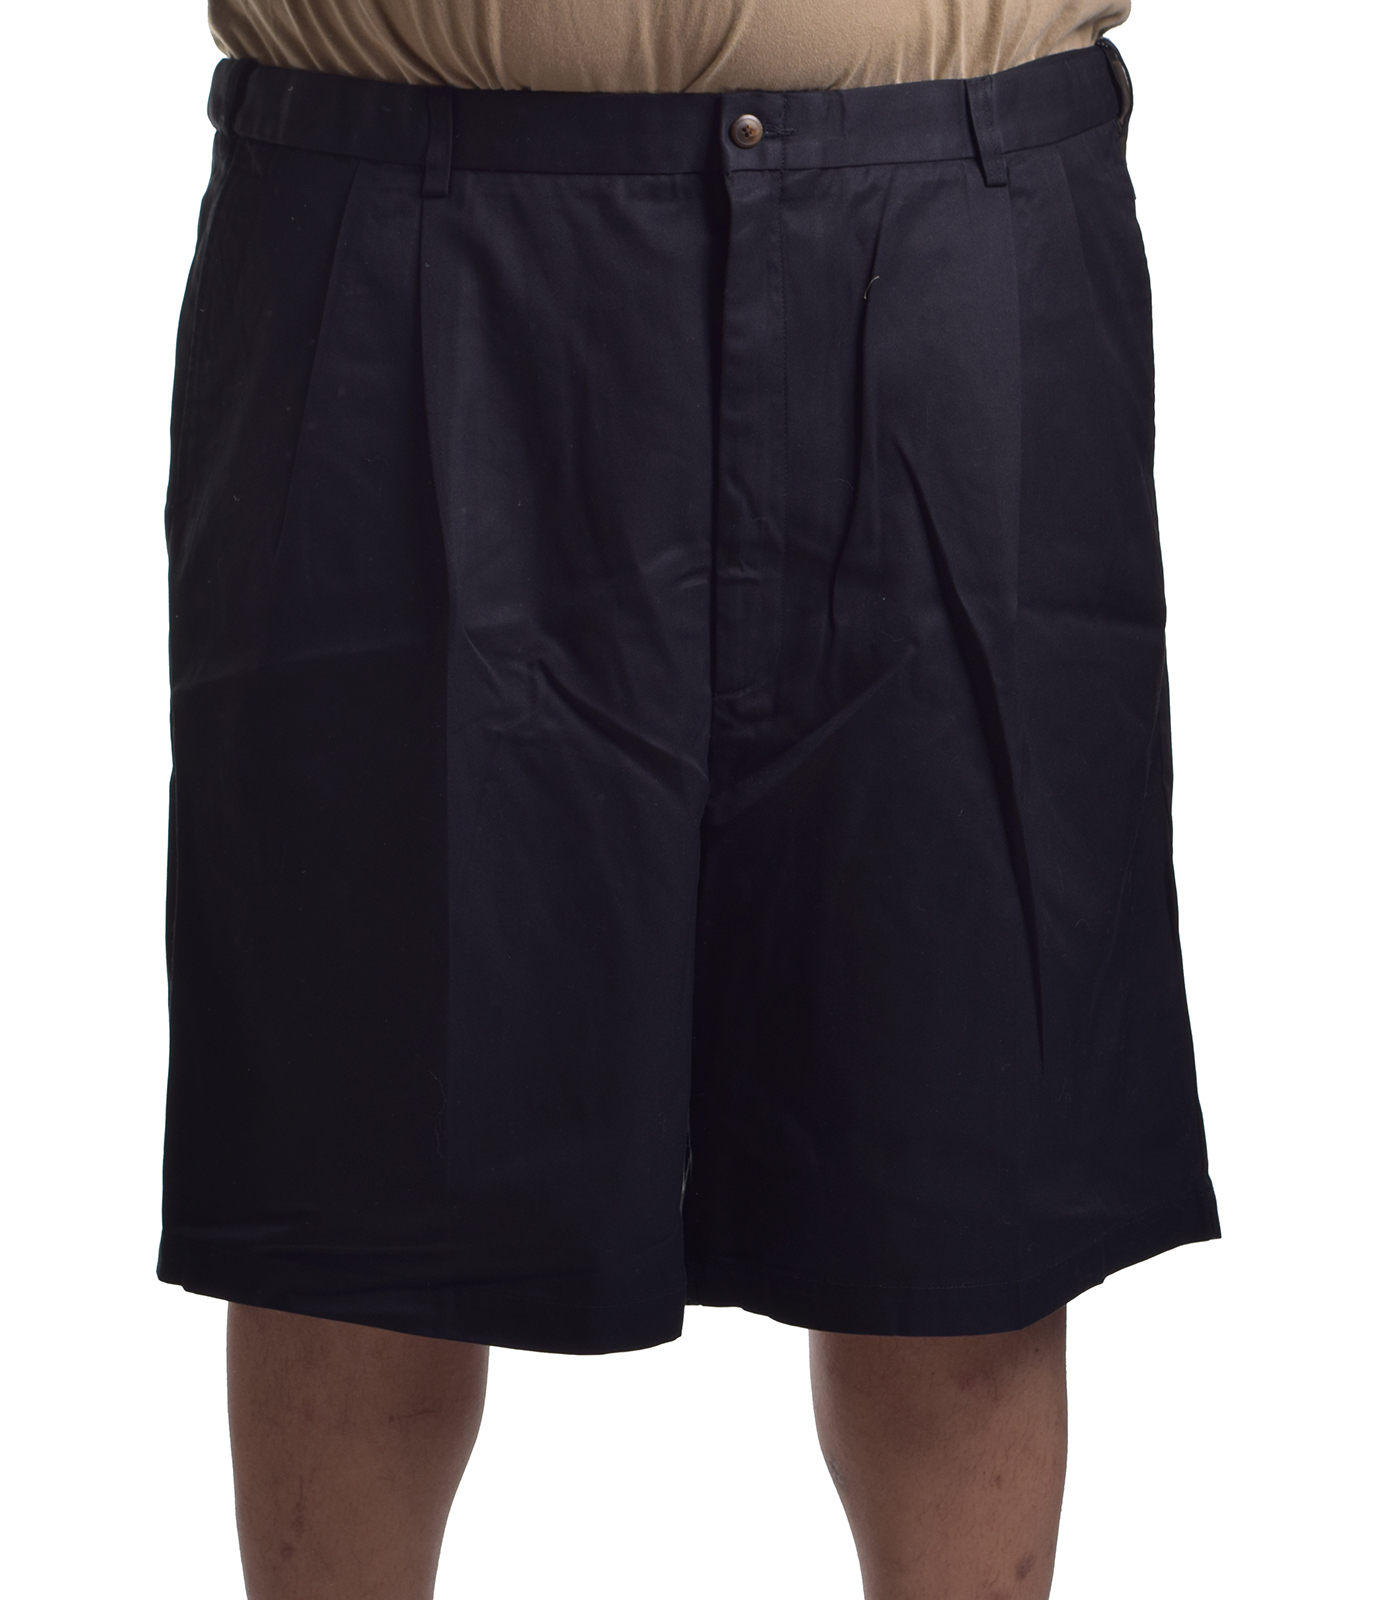 Browse our range of shorts for tall guys. Our tall men's shorts are designed to fit taller men, adding length for a perfect, comfortable and stylish fit. Browse our range of shorts for tall guys. Our tall men's shorts are designed to fit taller men, adding length for a perfect, comfortable and stylish fit.